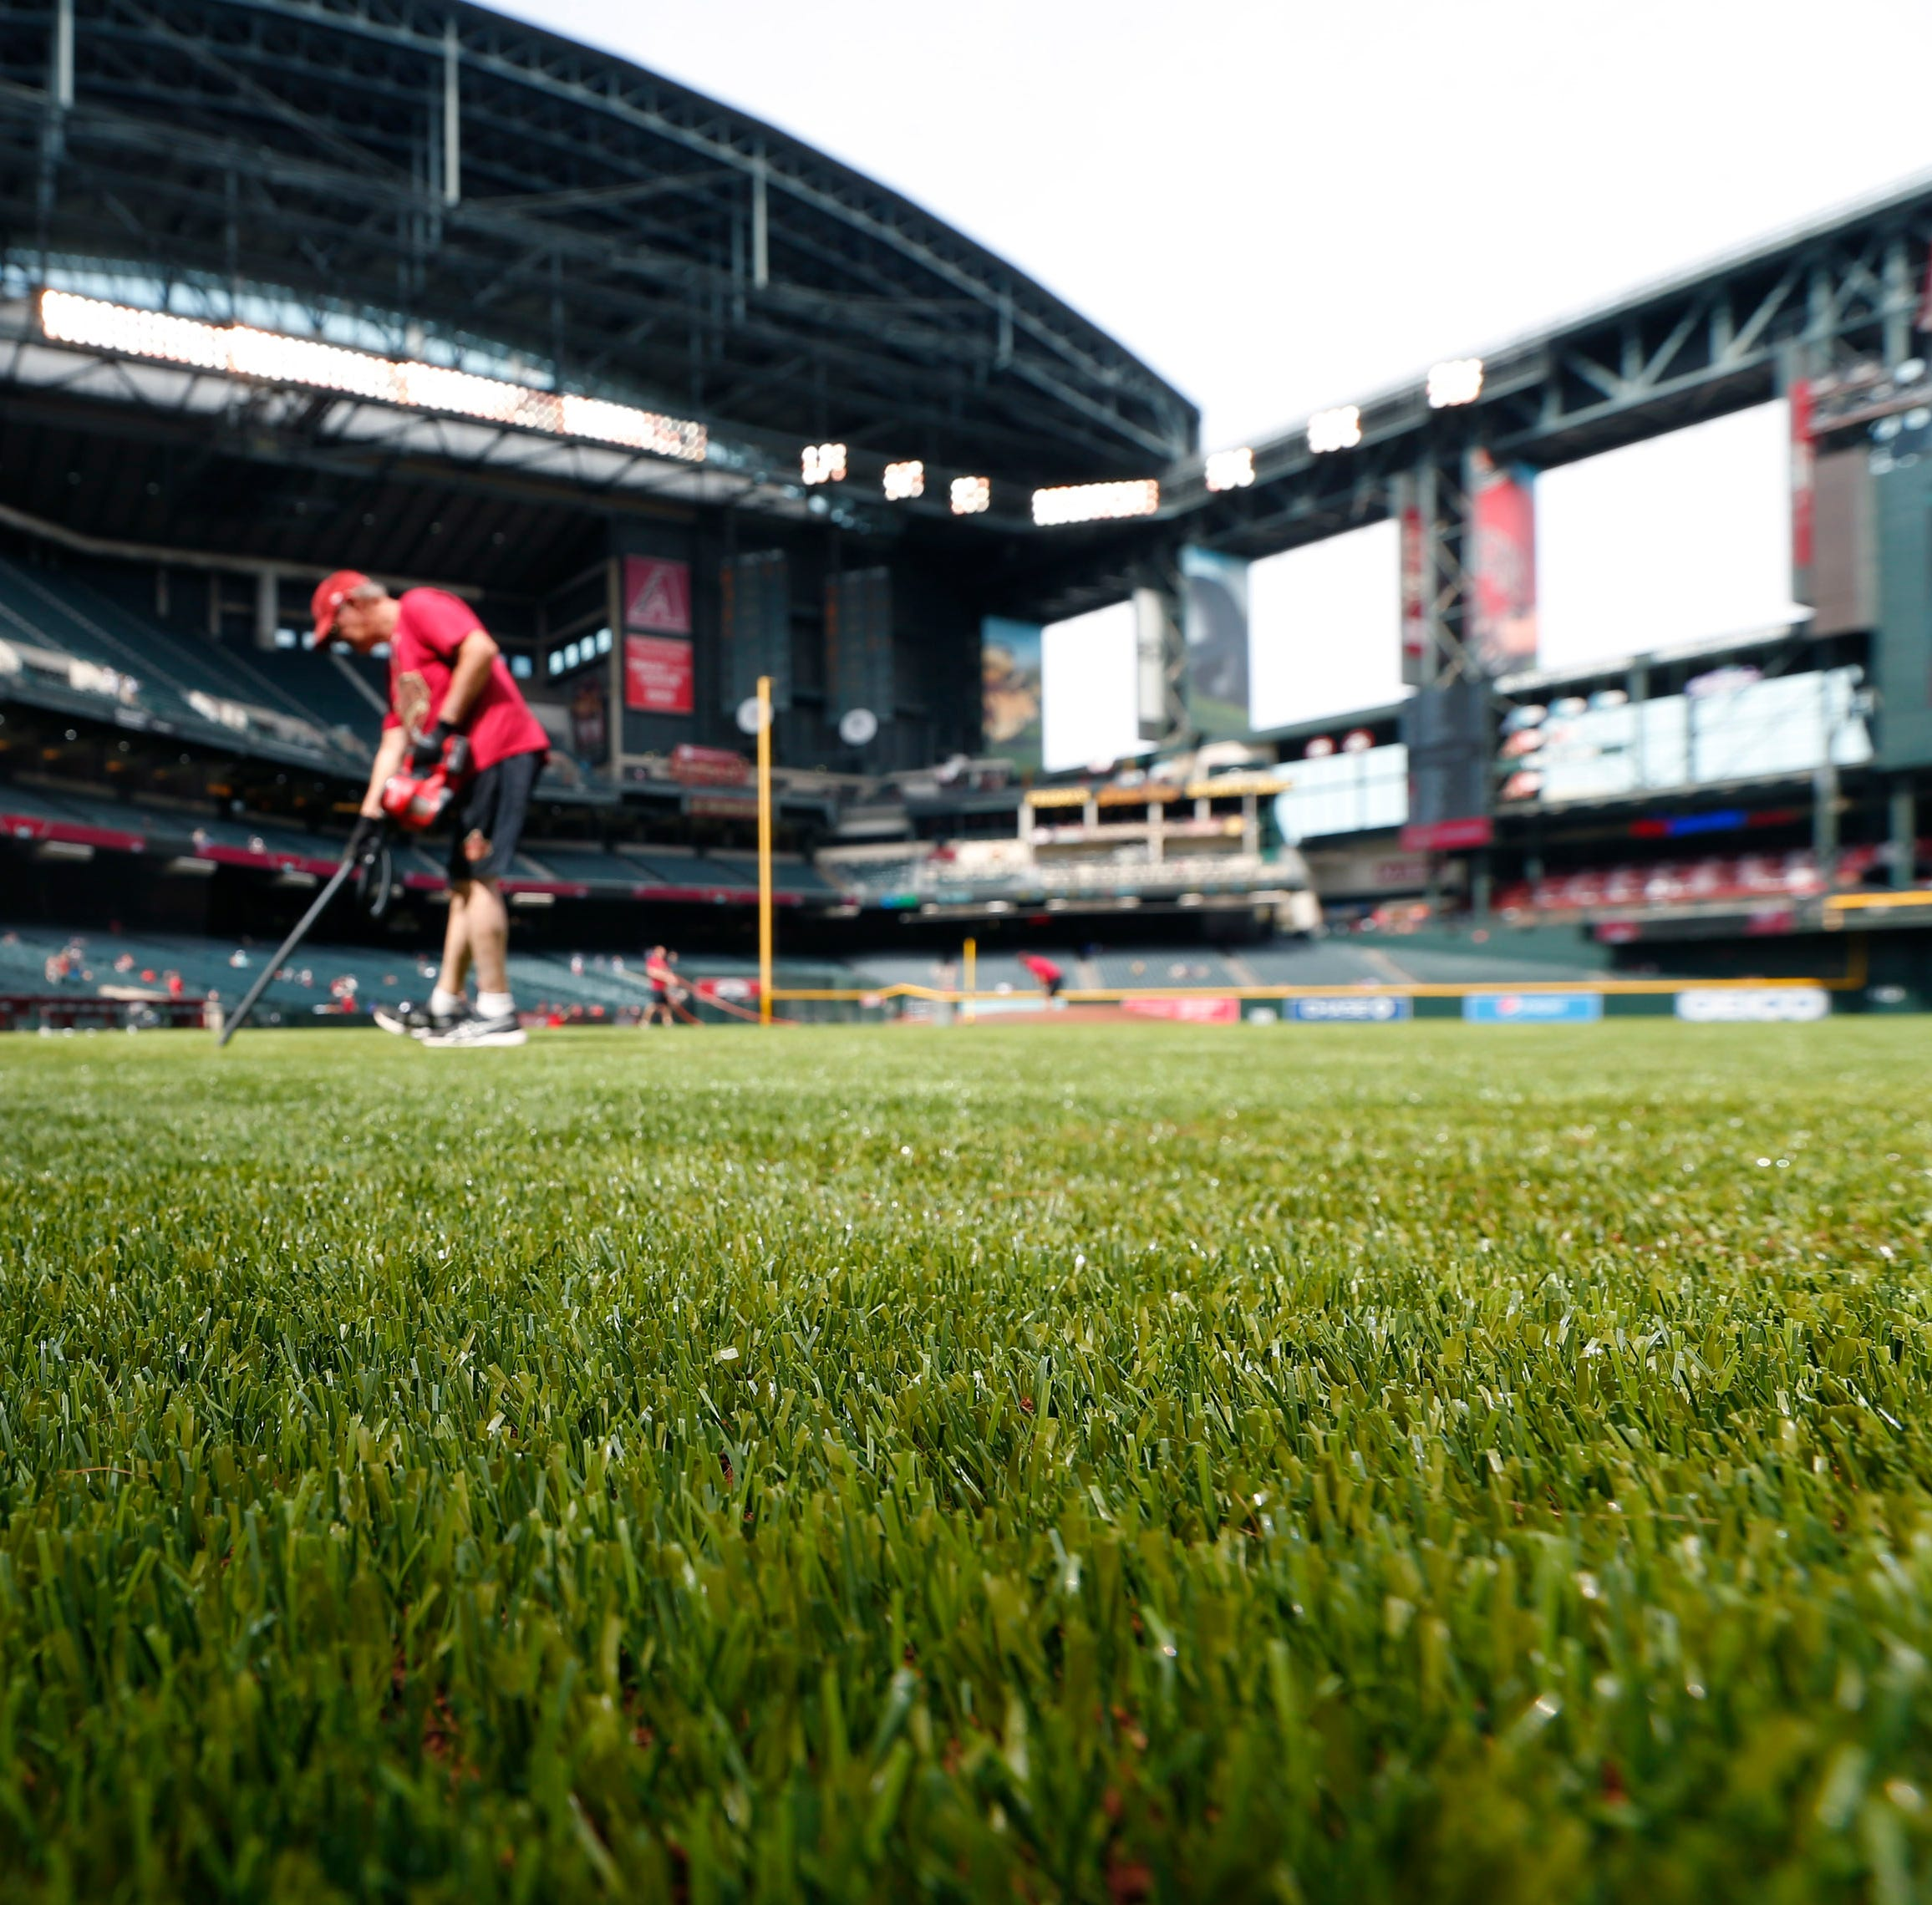 Arizona Diamondbacks' new turf is a sight to behold